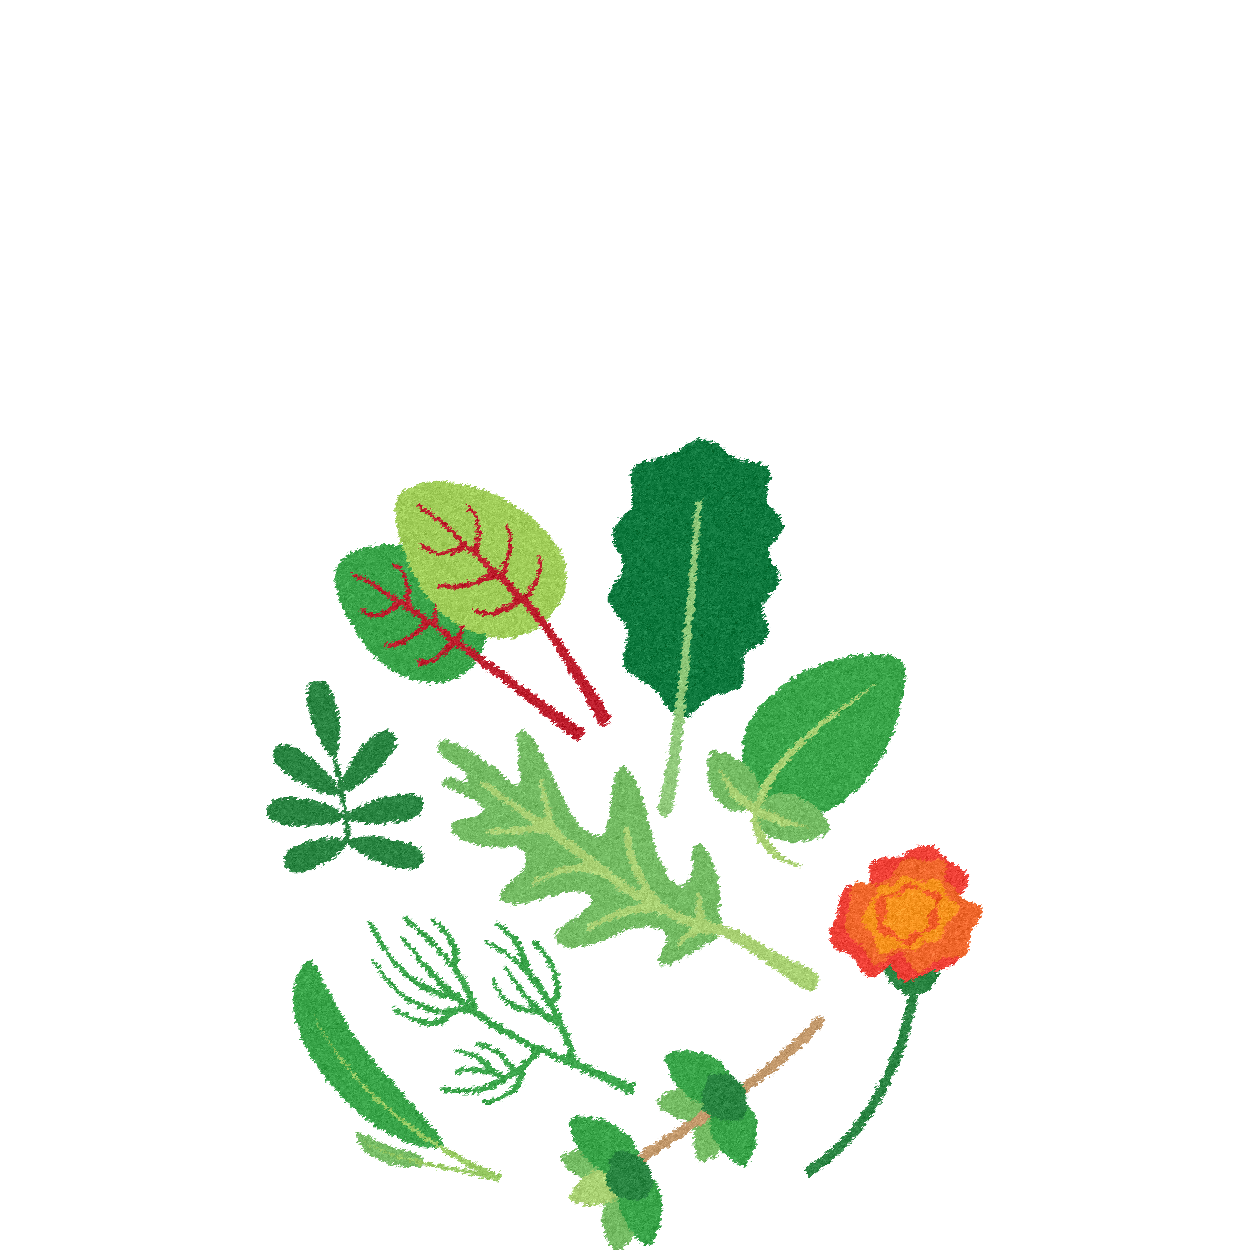 CorporateClientsPage_illustrations-02.png